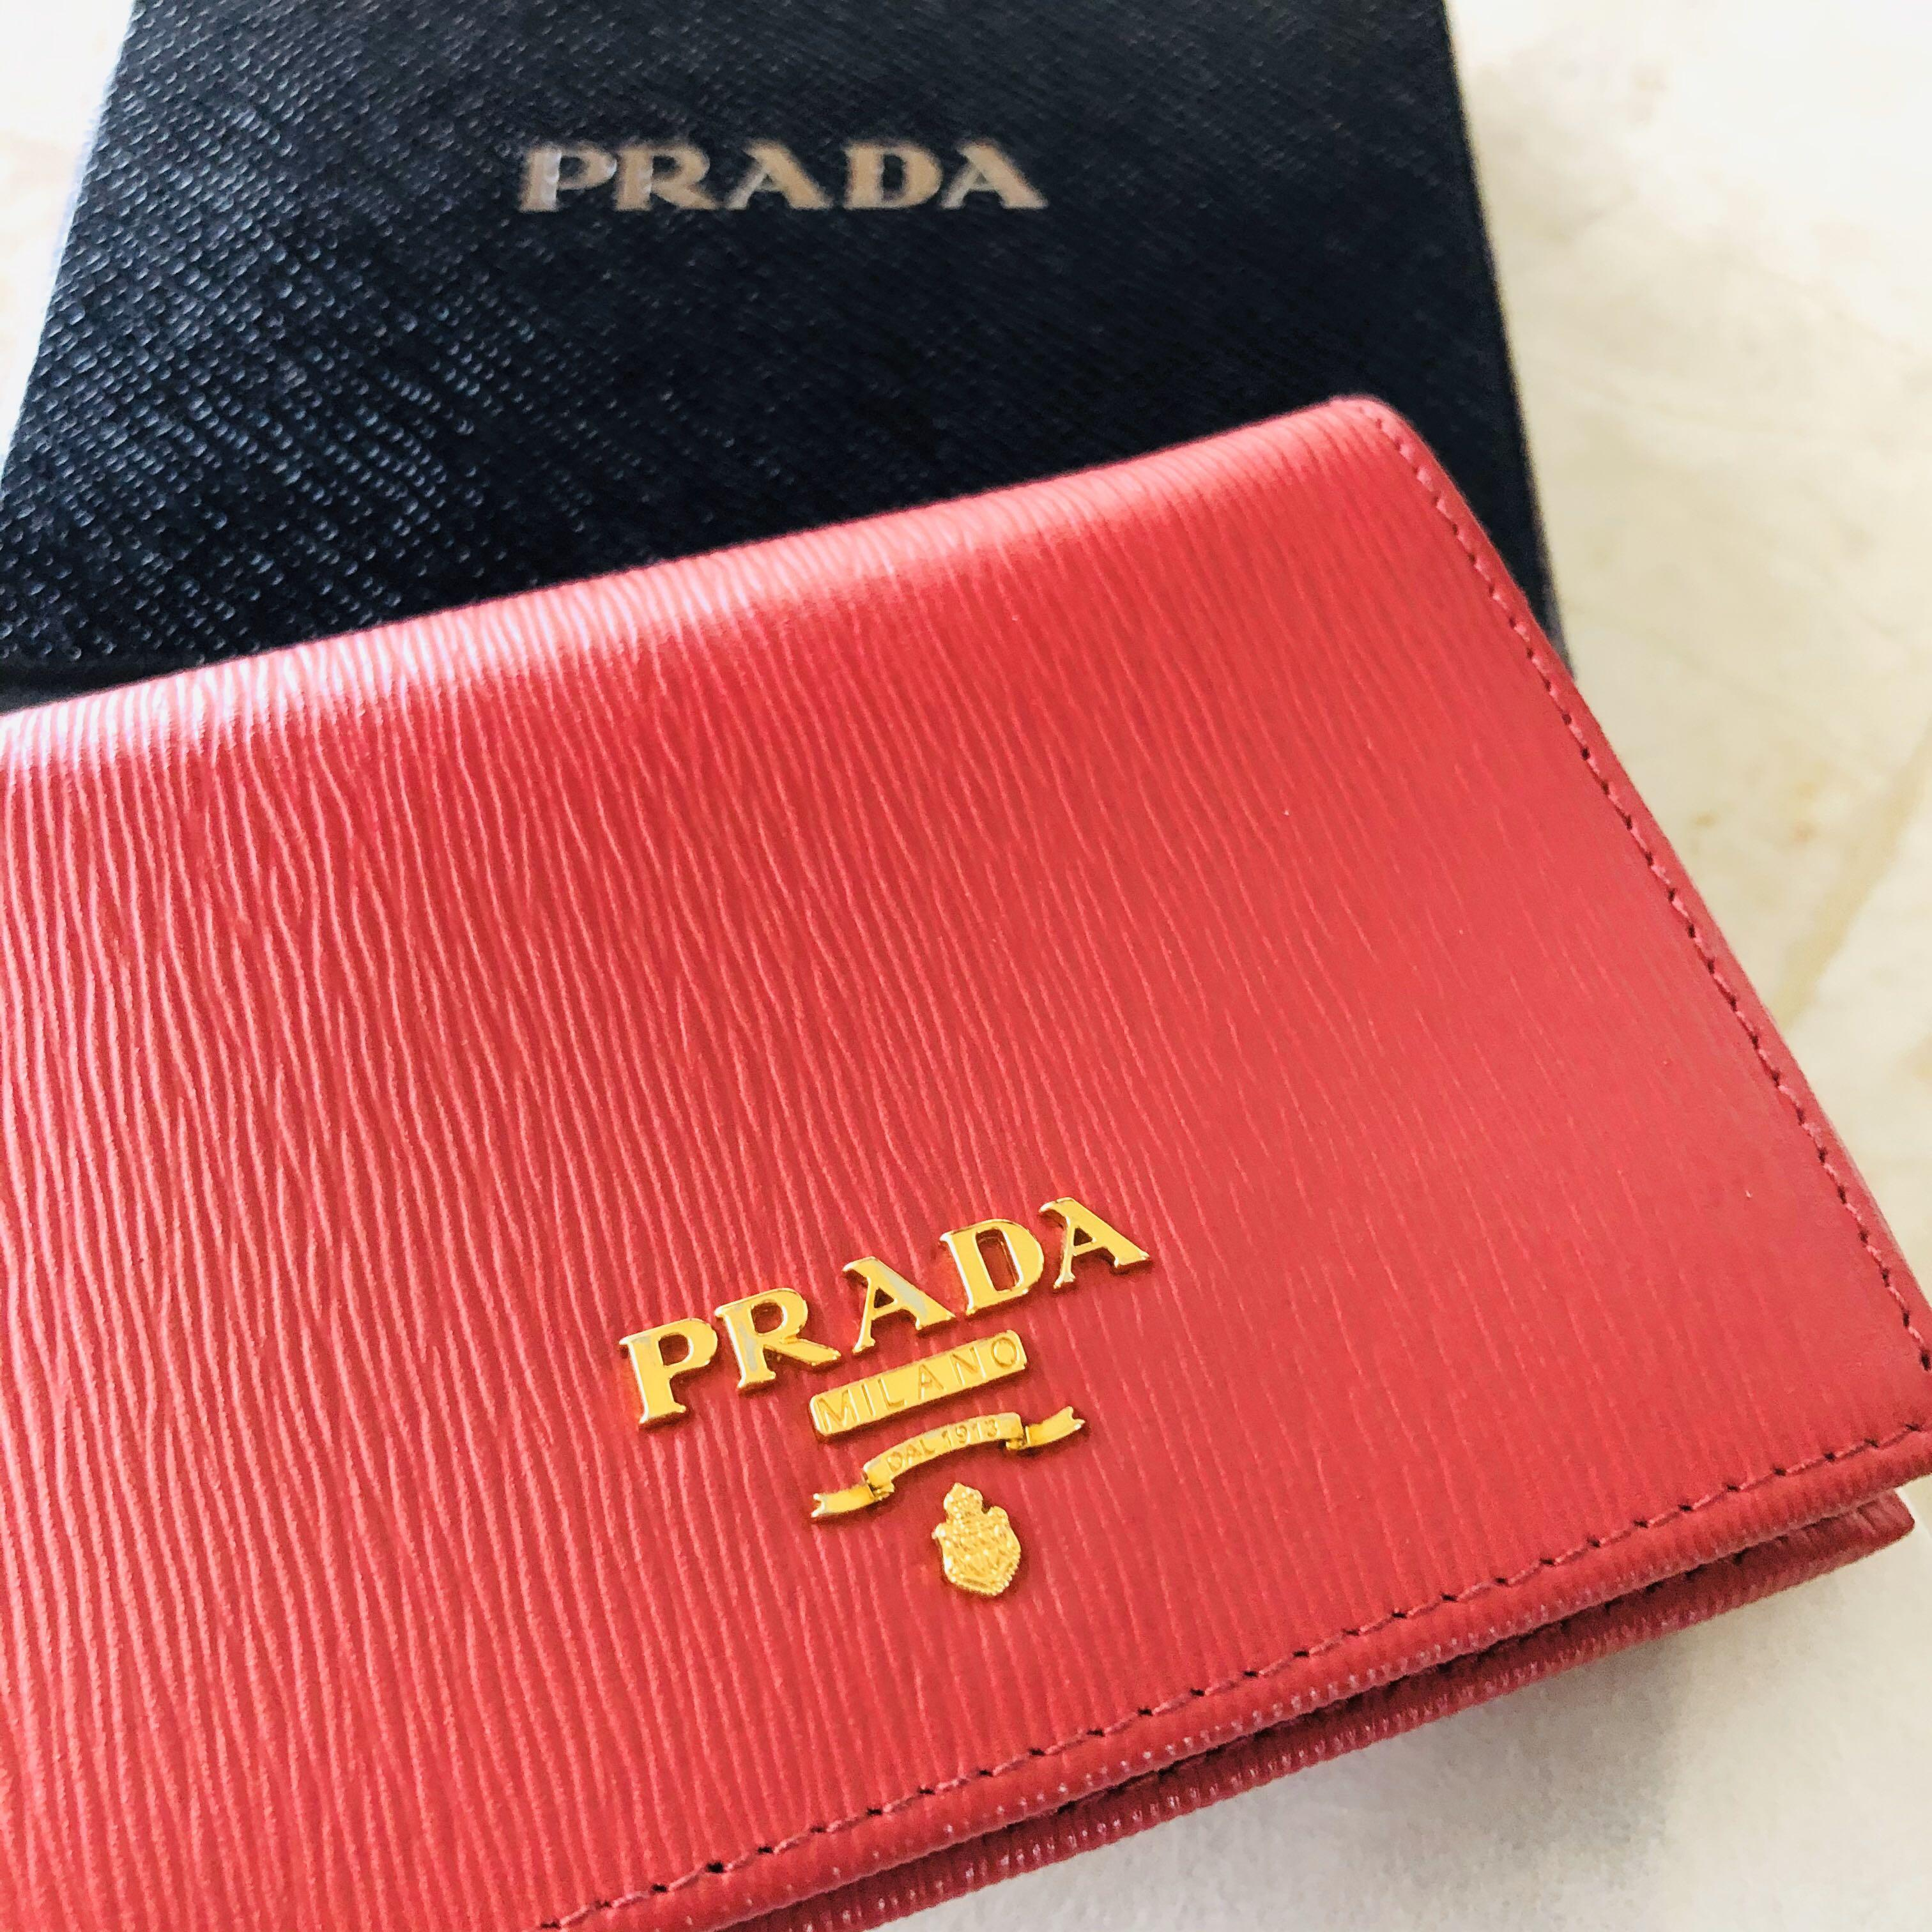 New Prada Saffiano Wallet Womens Pink Small Gold Leather Box